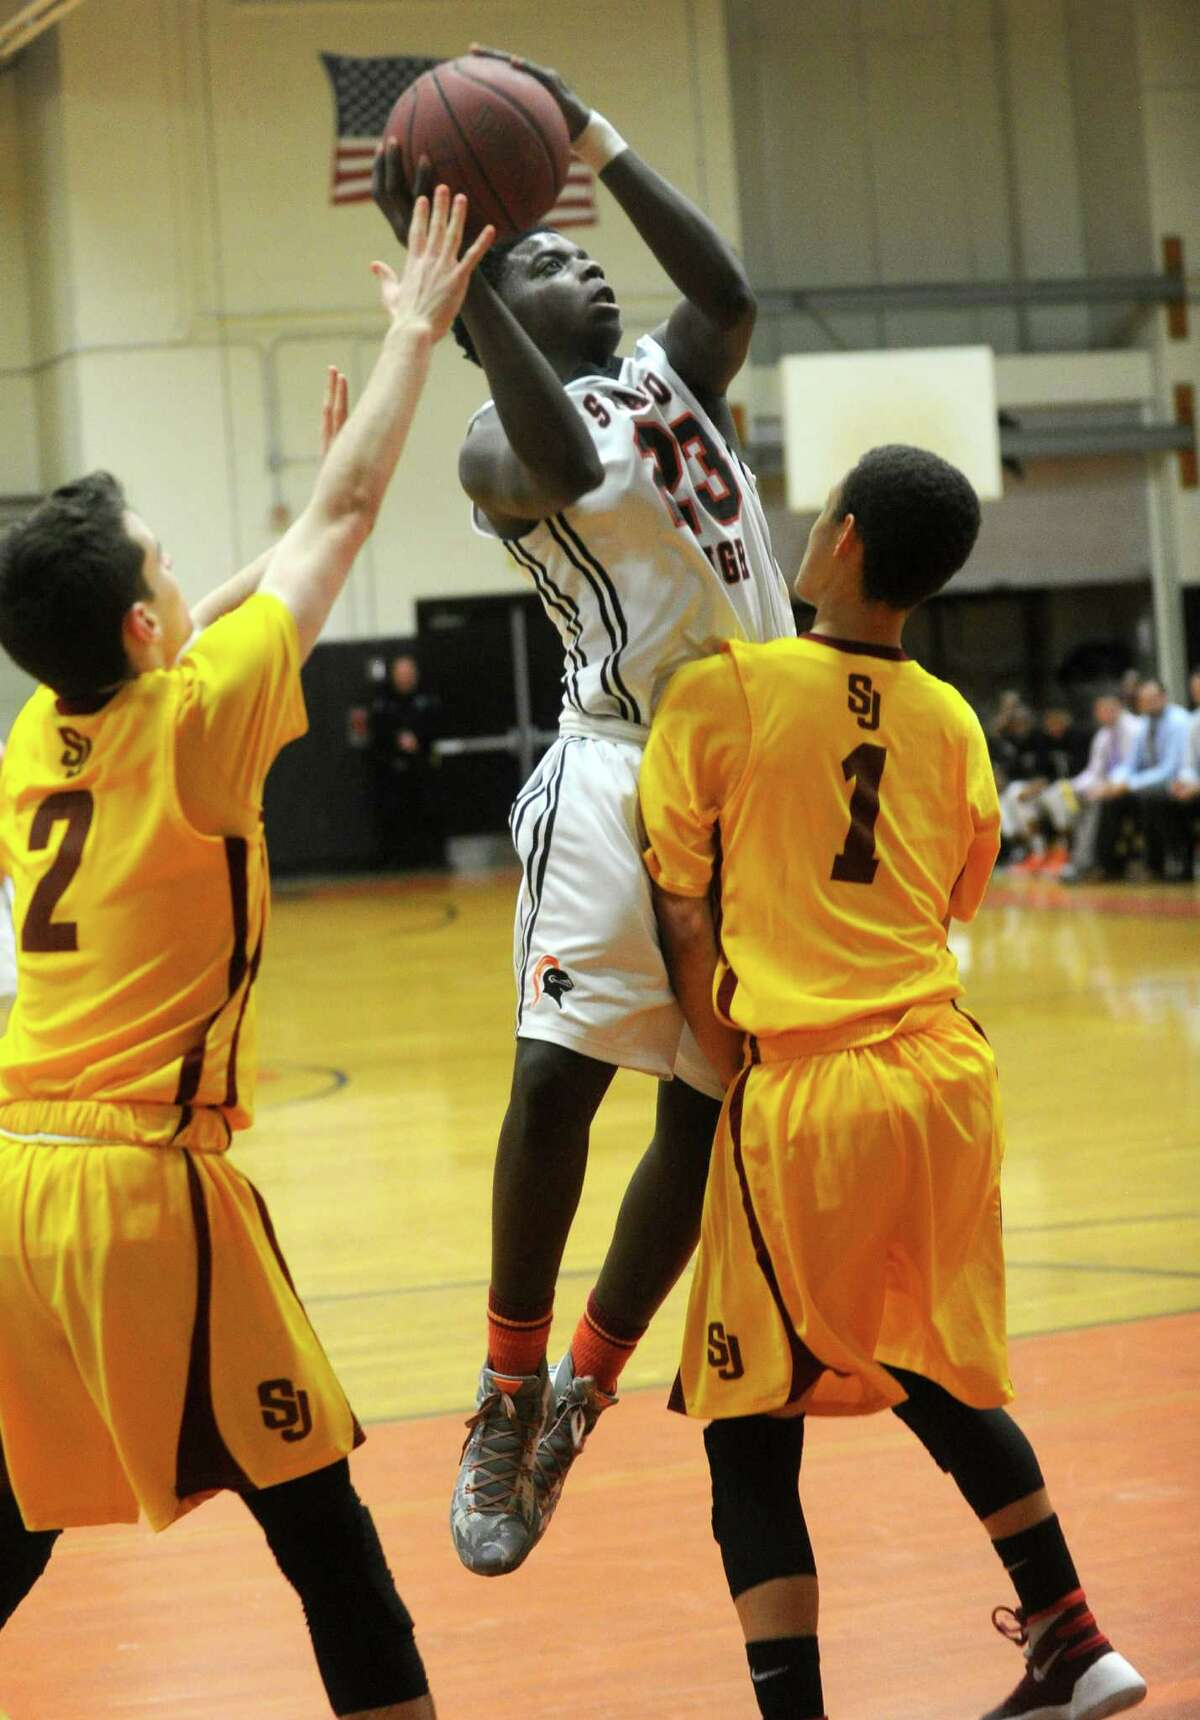 Stamford's Tevin St. John takes a shot during Friday's boys basketball game against St. Joseph at Stamford High School.